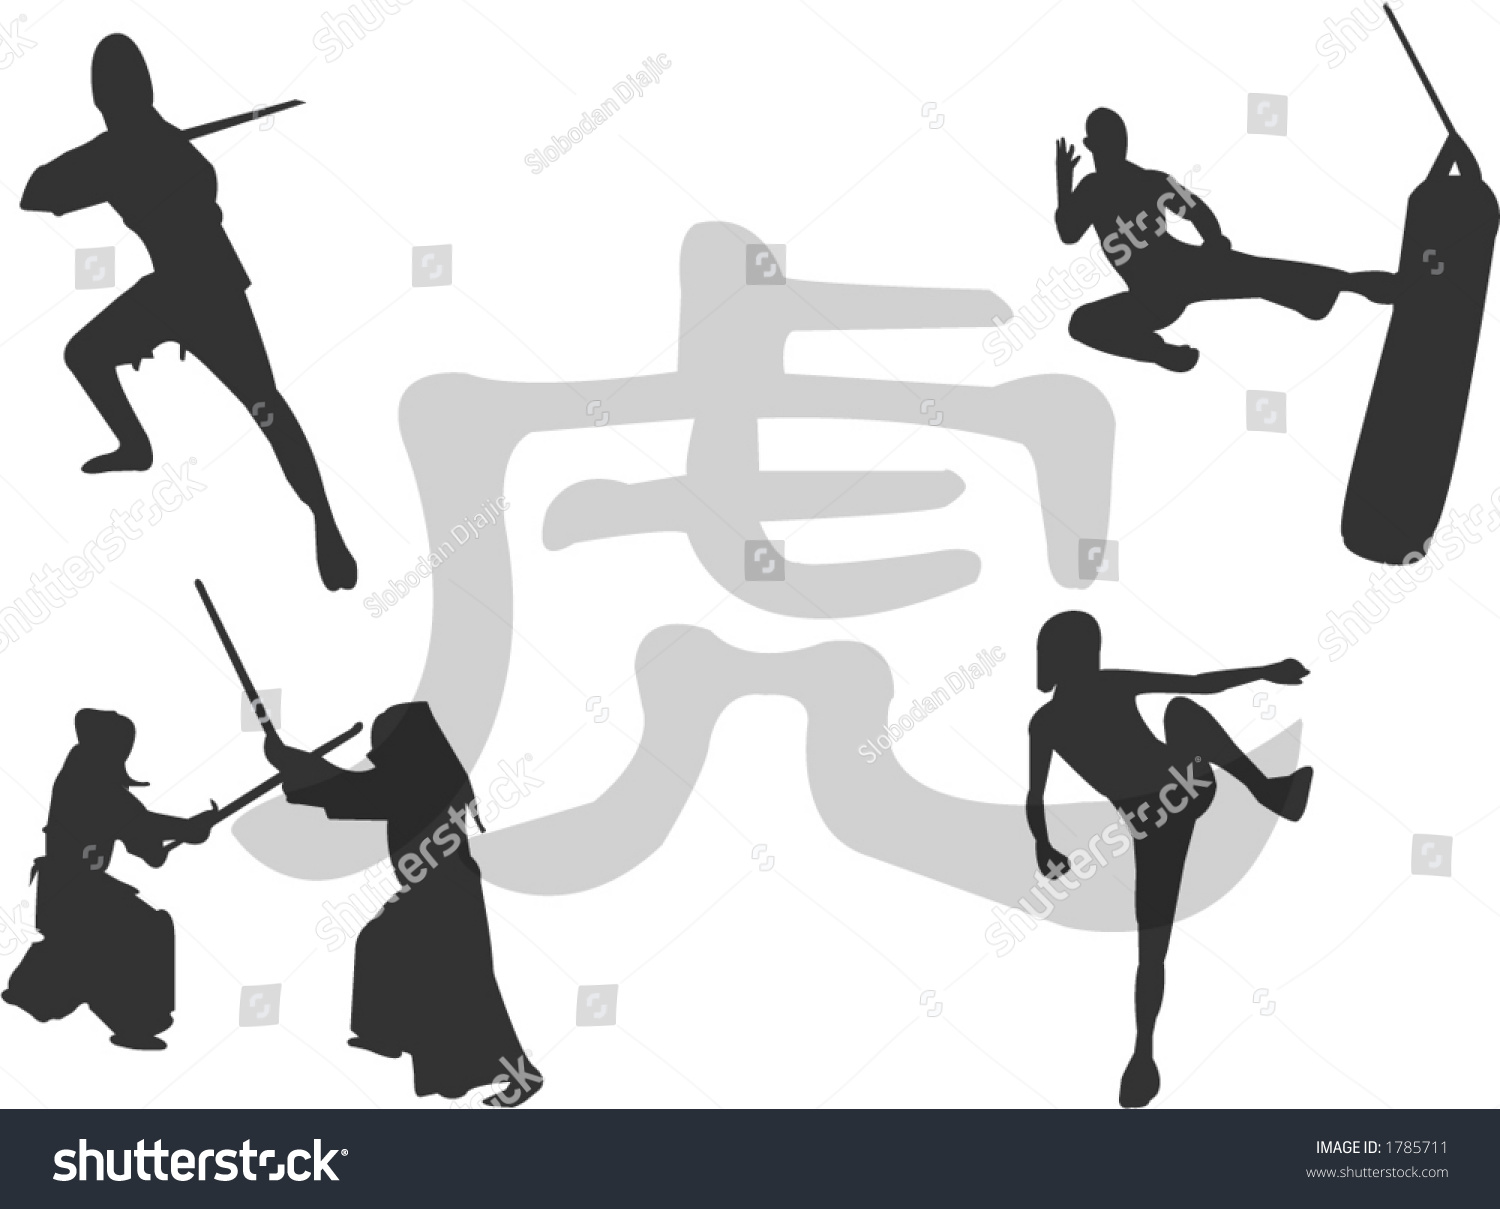 Martial arts illustration symbol tiger background stock vector martial arts illustration symbol of tiger in background biocorpaavc